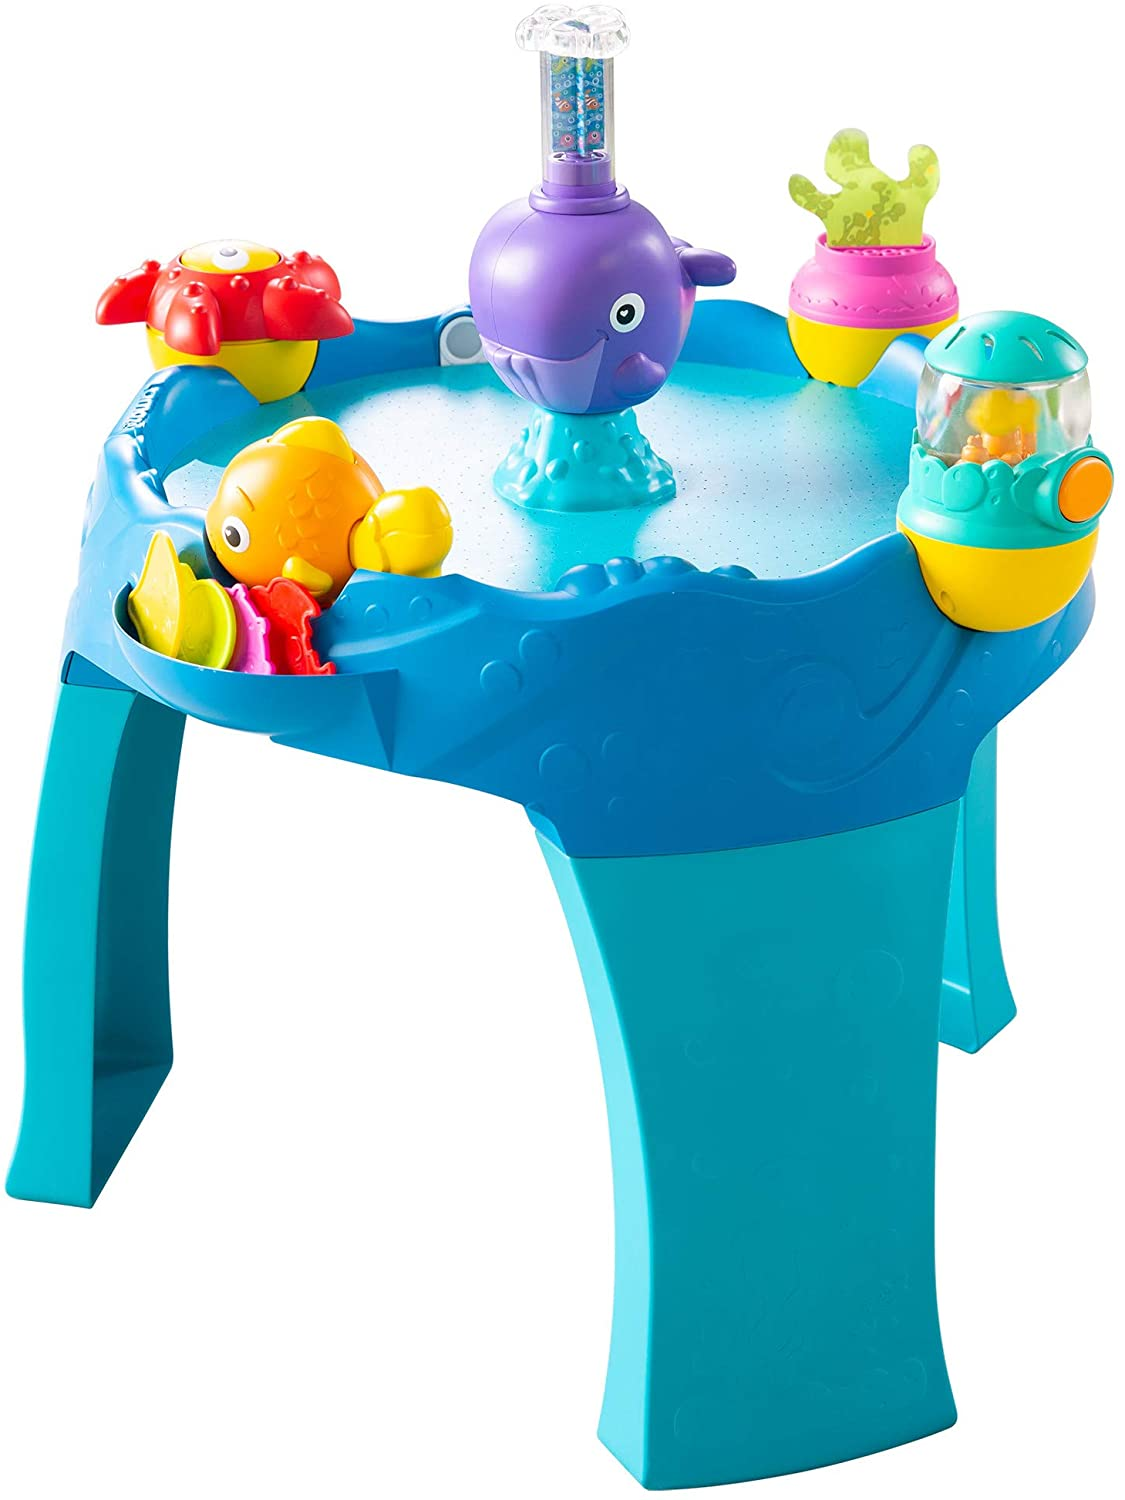 LAMAZE Airtivity Table for kids